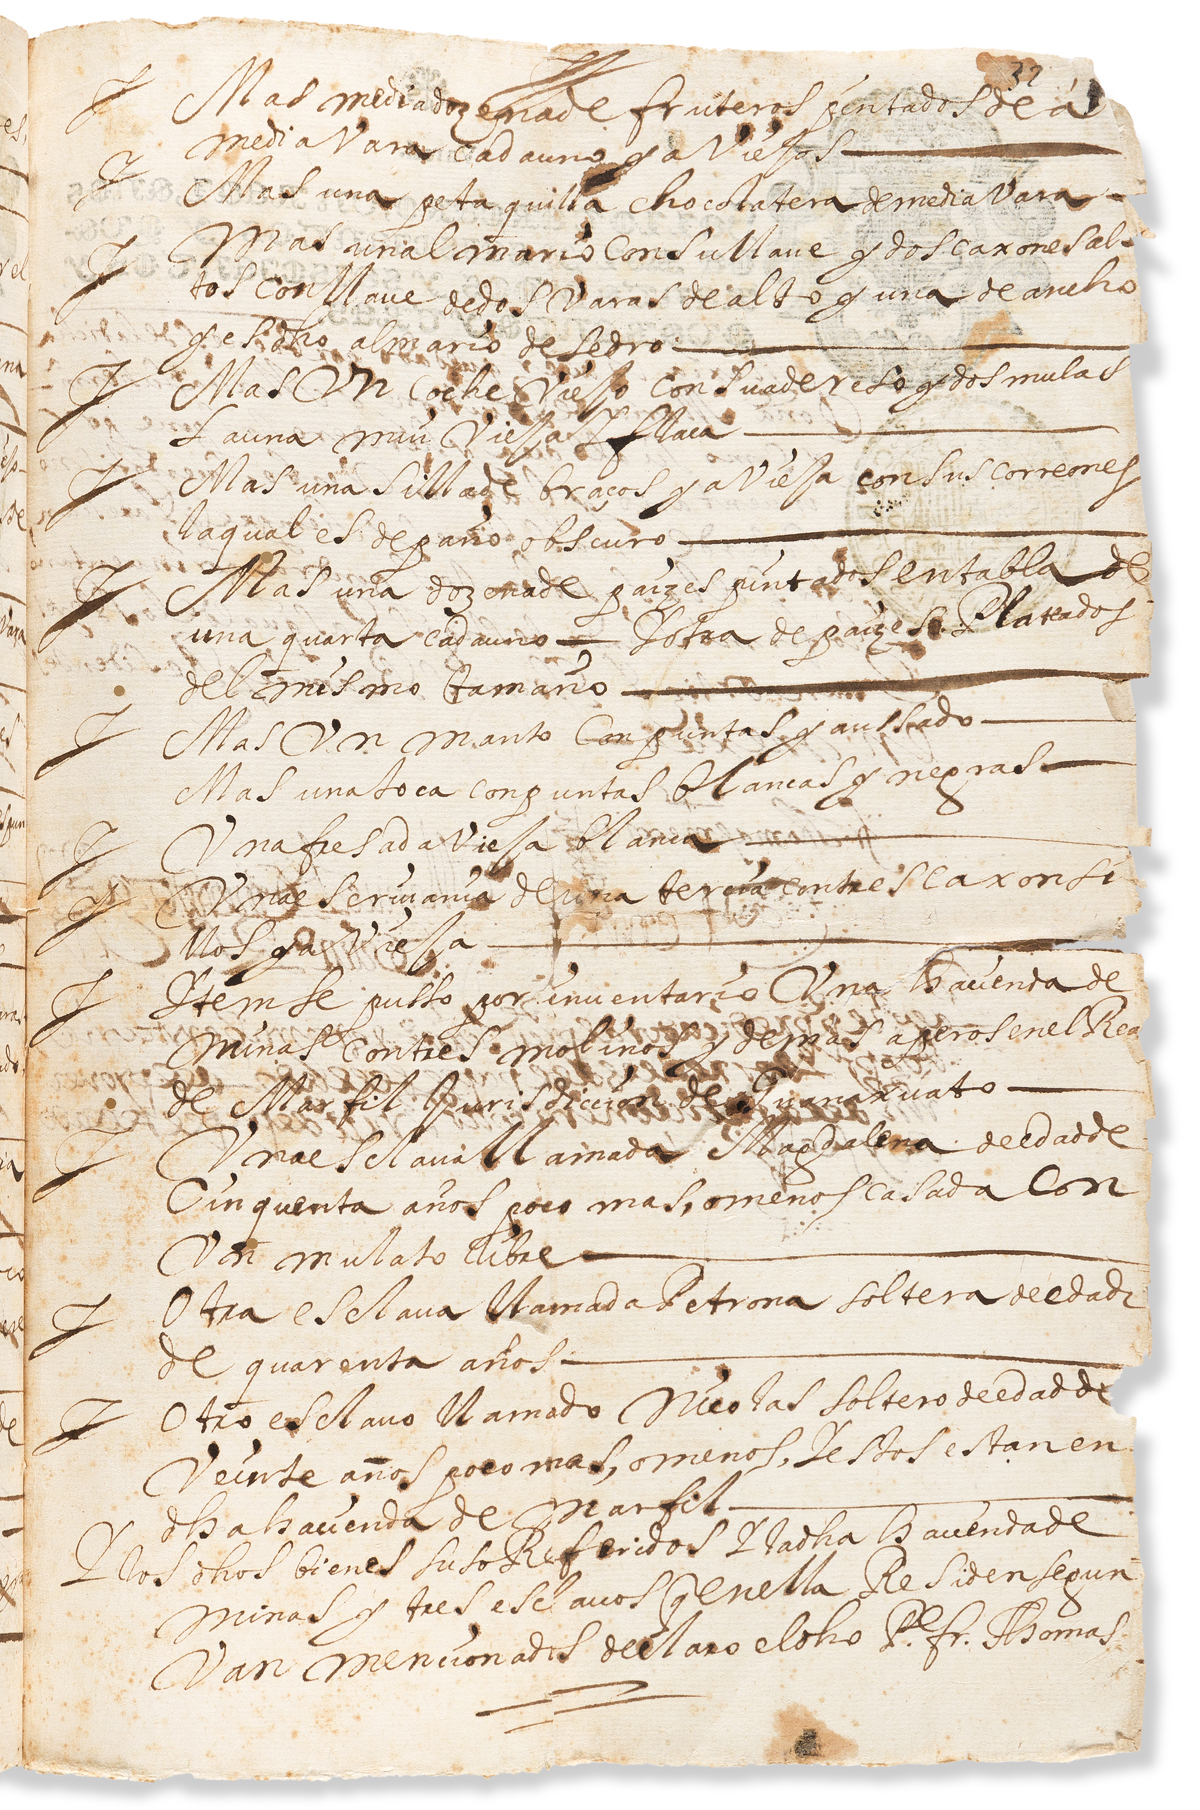 (SLAVERY AND ABOLITION--MEXICO.) Mexican estate record including an inventory of enslaved people.